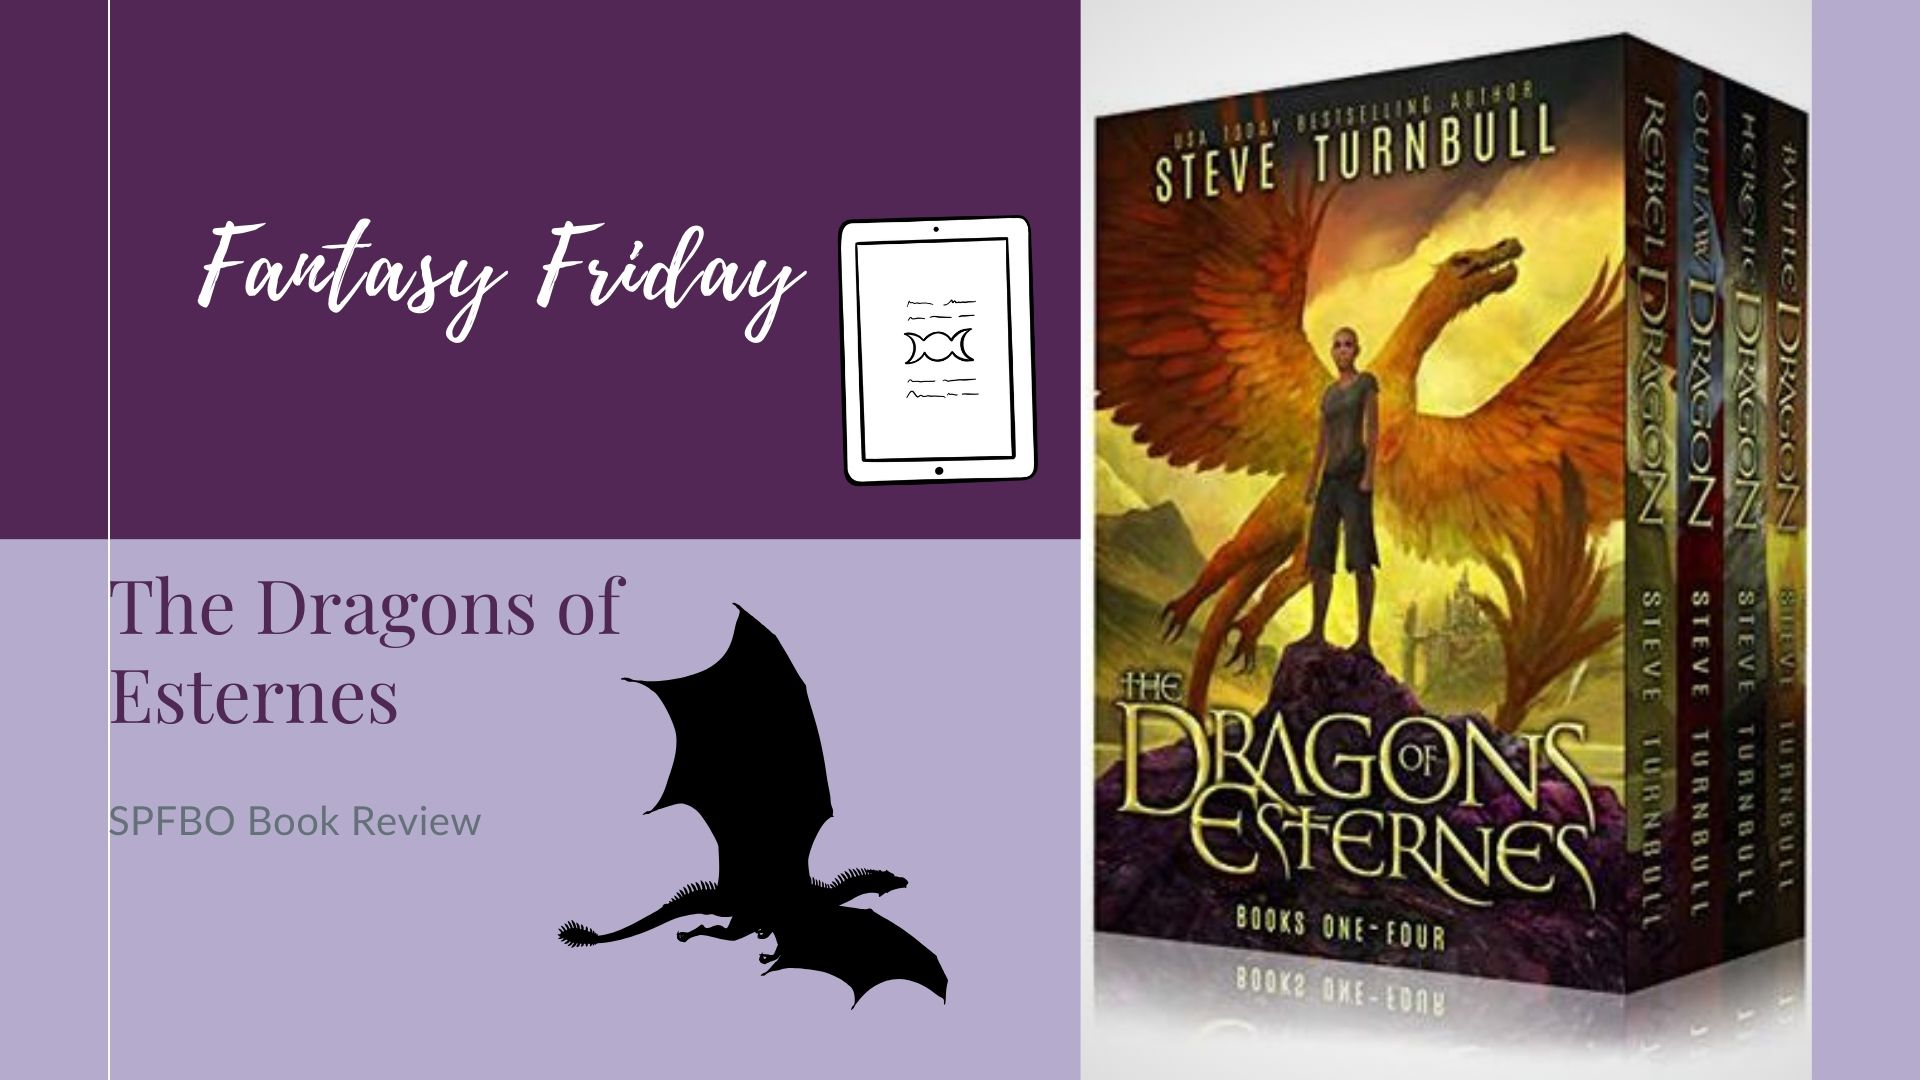 You are currently viewing Fantasy Friday: The Dragons of Esternes by Steve Turnbull